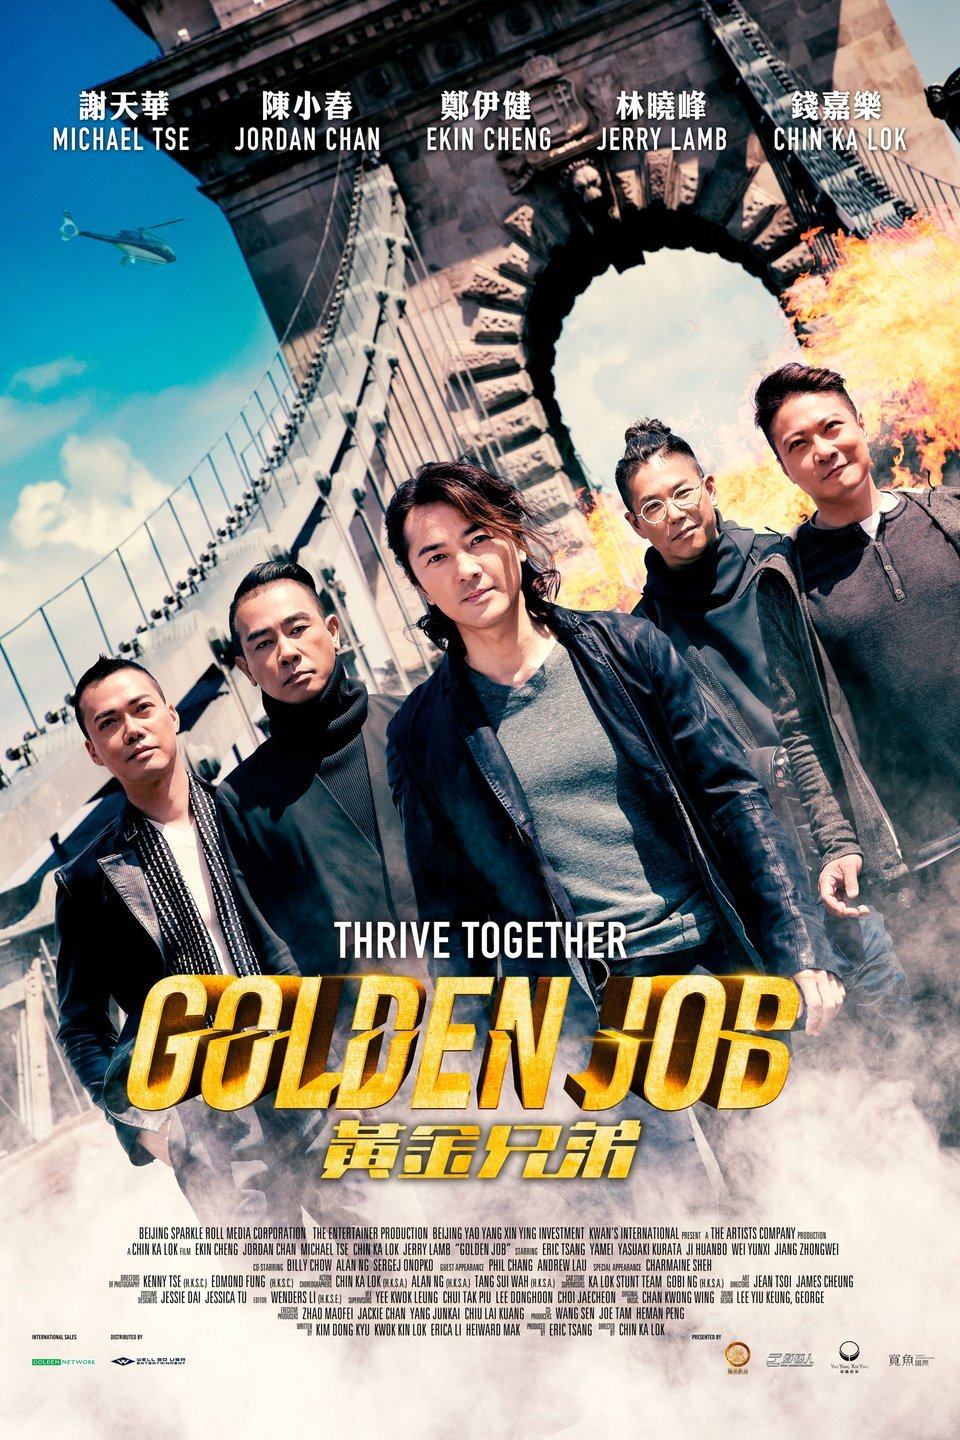 Golden Job 2018 full movie free download hd 424mb And 900mb